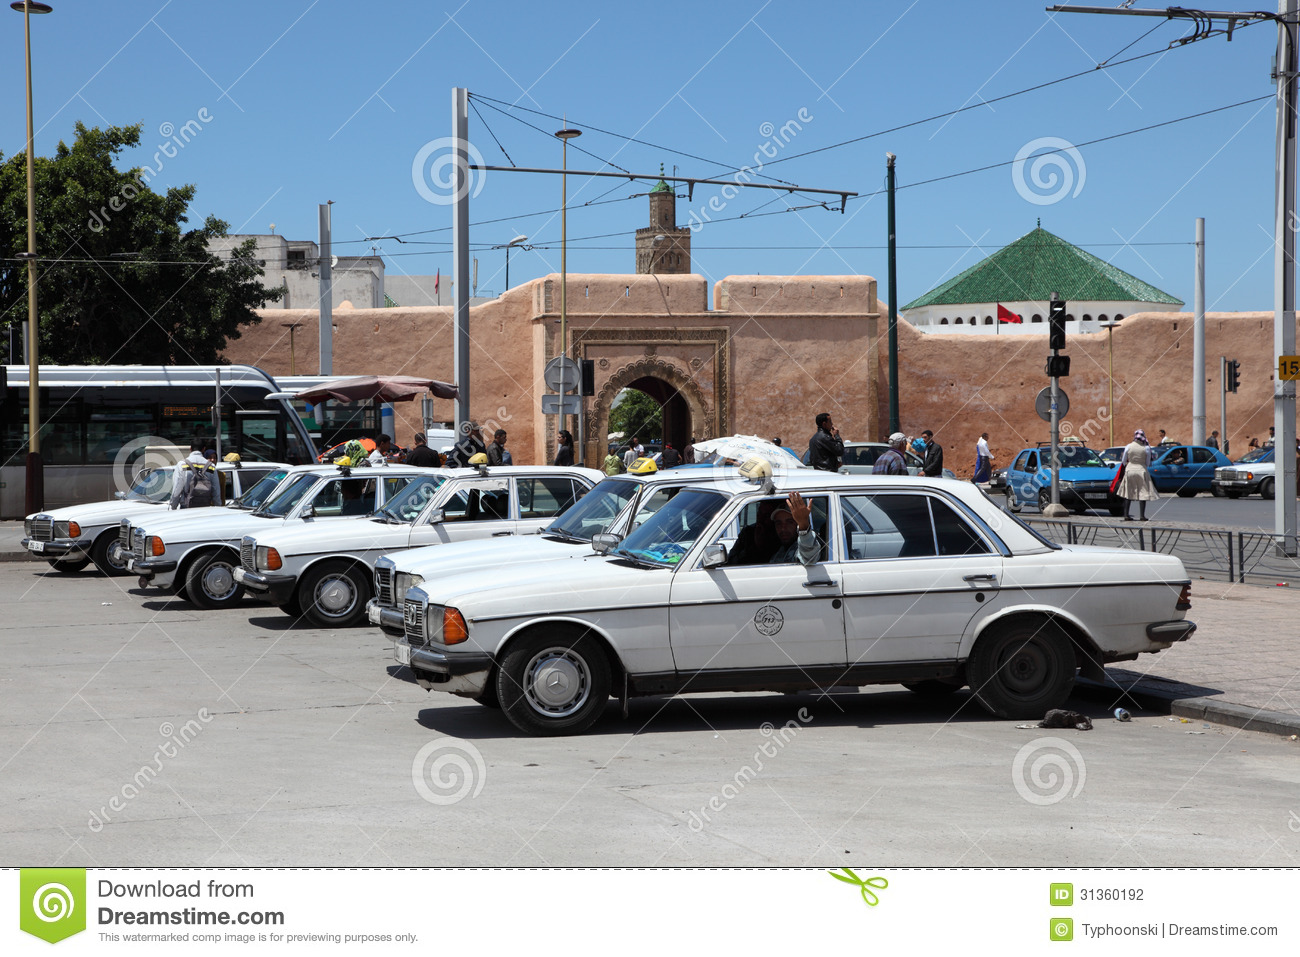 Taxi rank in rabat morocco editorial photography image for Mercedes benz cars com